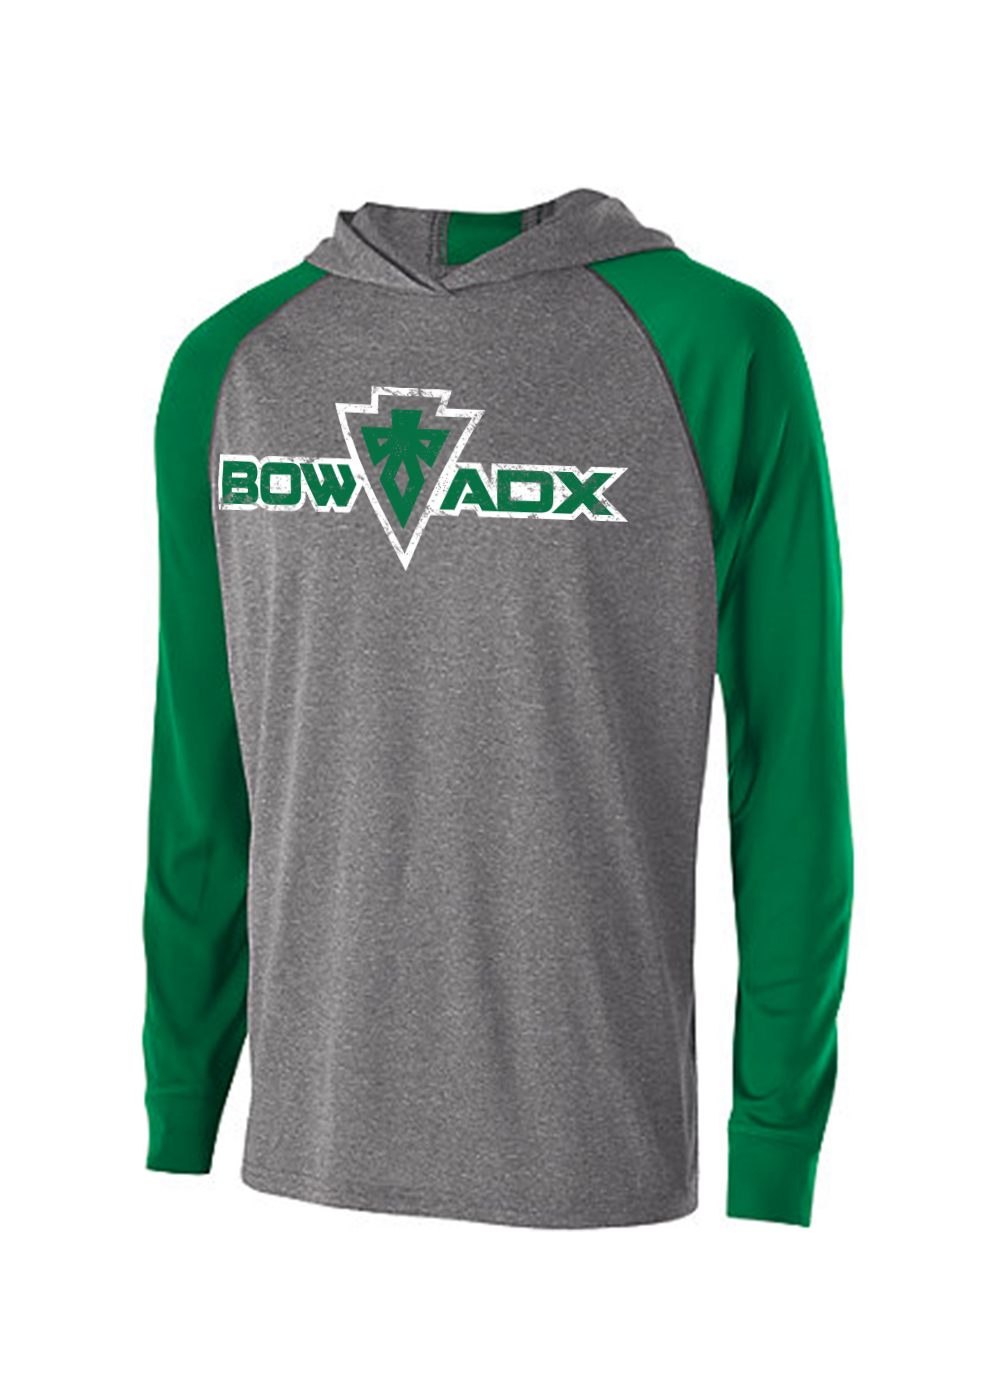 Click image for larger version.  Name:Long-Sleeve-Heather-Graphite-Kelly-Green-Pullover-Hoodie.jpg Views:N/A Size:360.1 KB ID:6290105